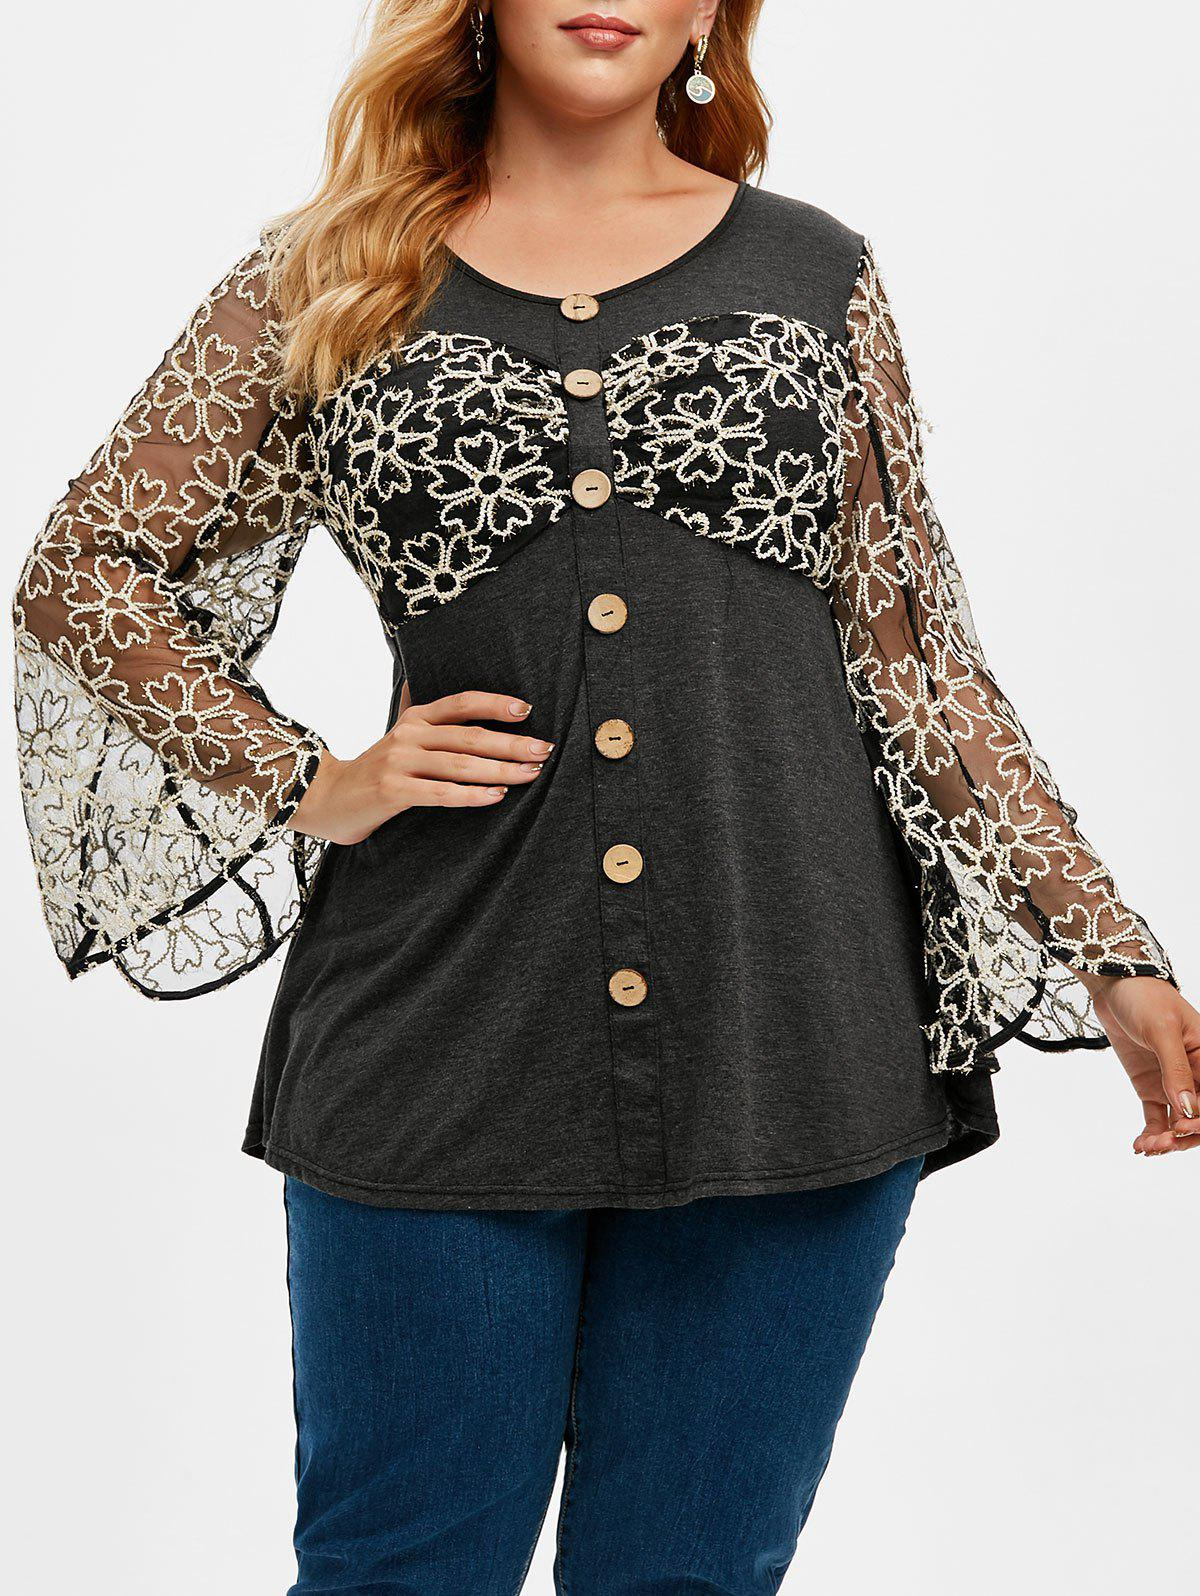 Plus Size Heathered Floral Mesh Buttons T Shirt фото